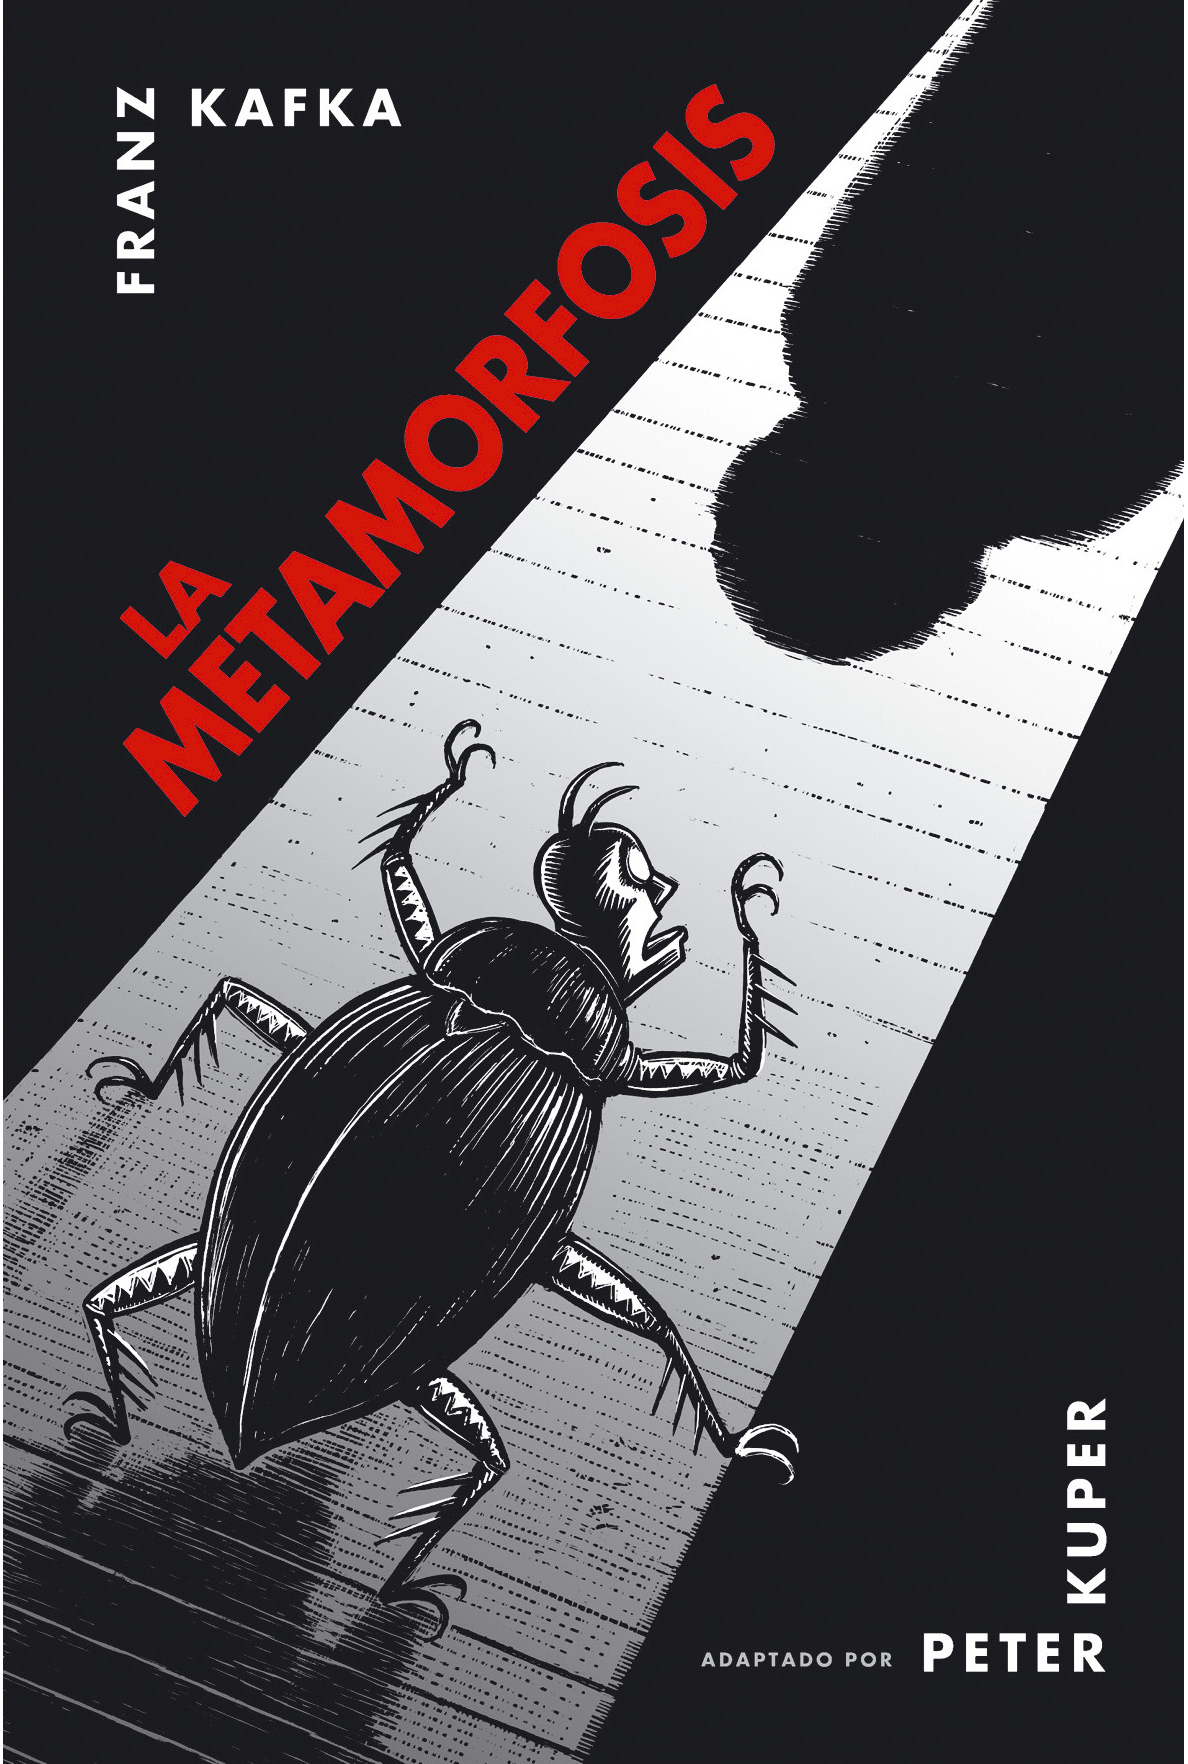 """metamorphosis by peter kuper essay Required text: graphic novel from the metamorphosis by peter kuper recommended pacing: pp 107-125 reading skill: """"summarize text"""" call out boxes focus on section f, g, i, m, r, t, and i2, of the text."""